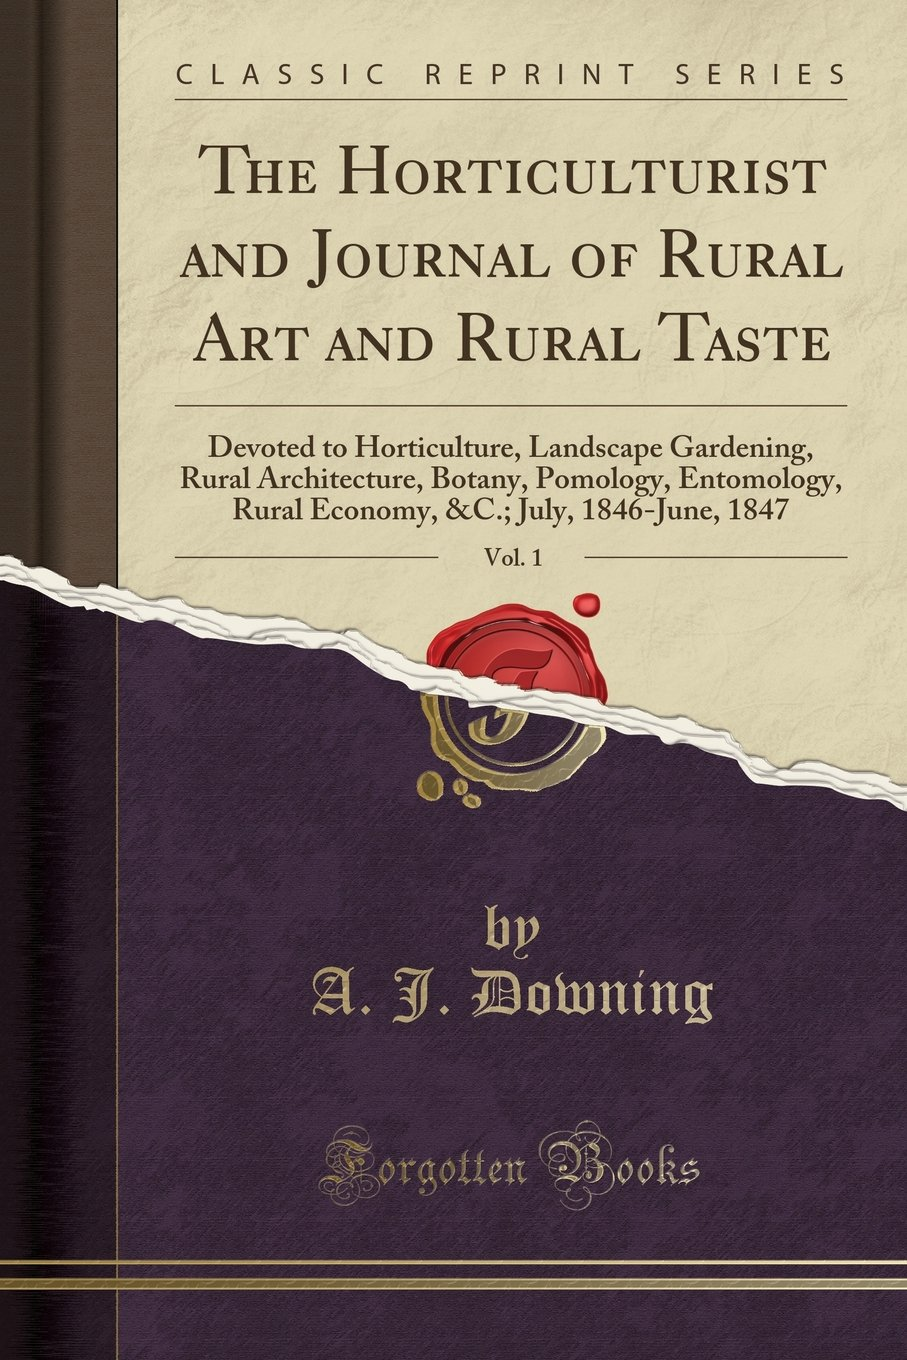 The Horticulturist and Journal of Rural Art and Rural Taste ...